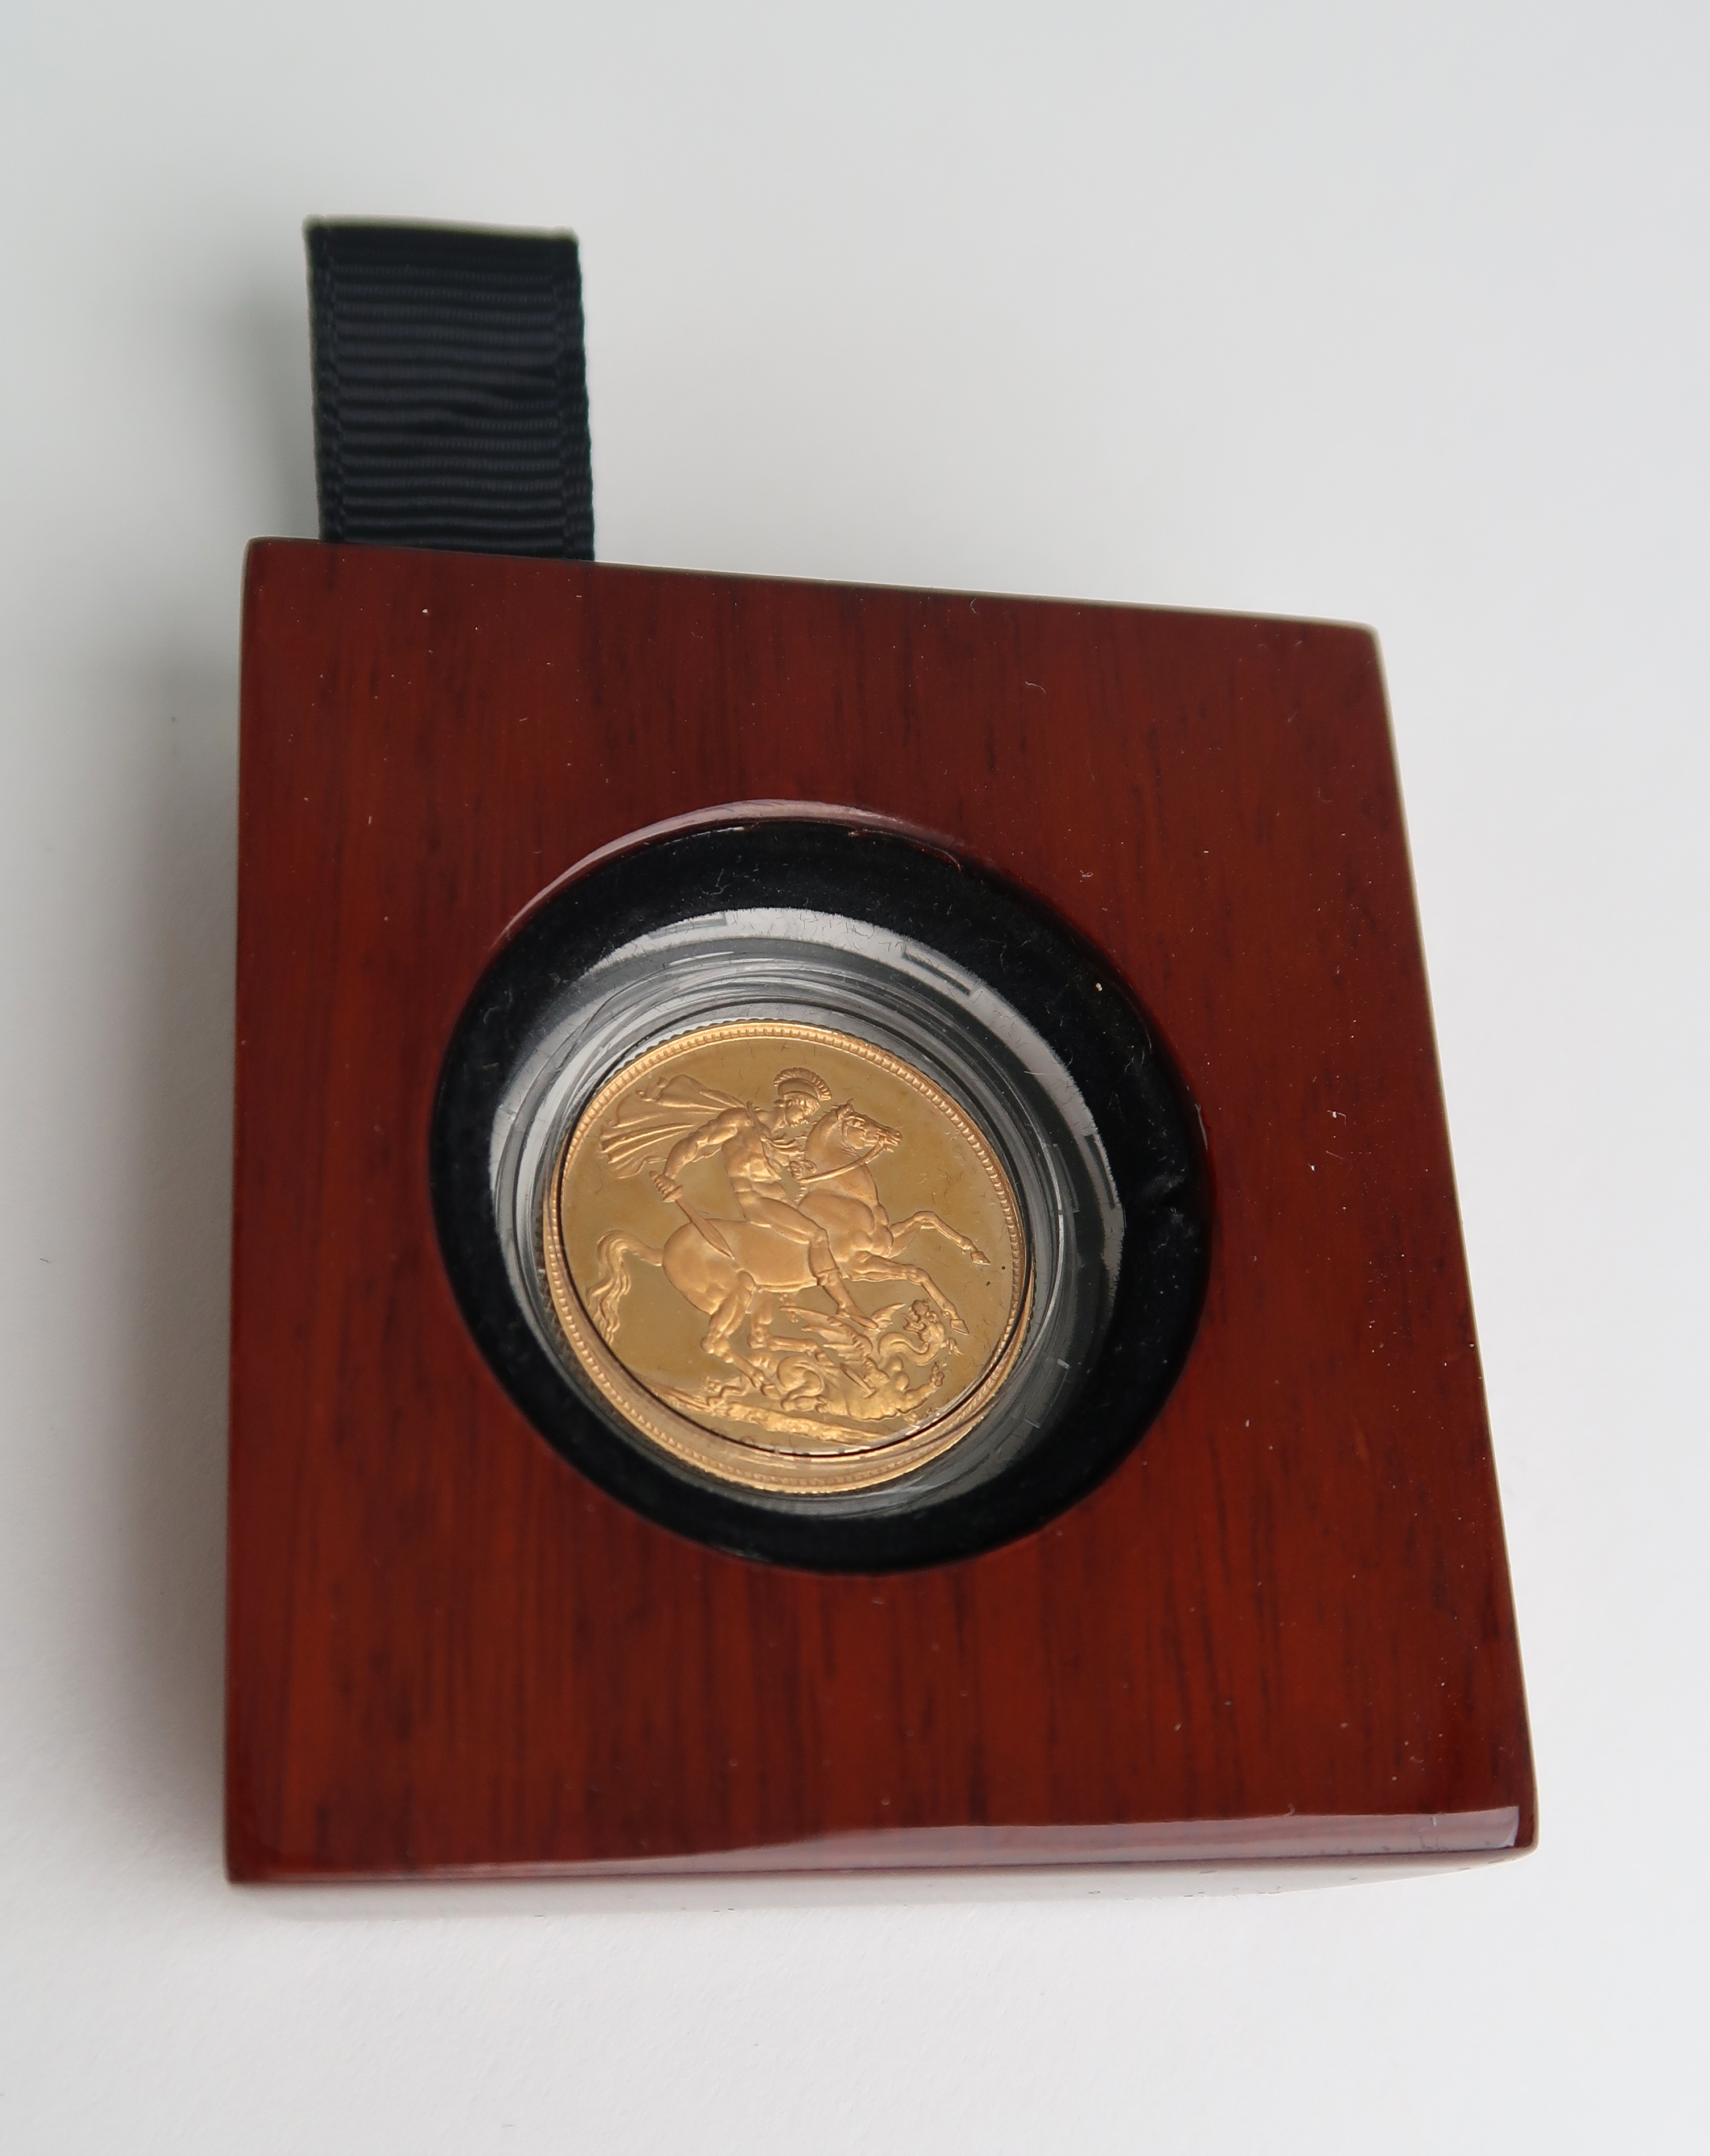 A CASED GOLD PROOF FULL SOVEREIGN 2015 Condition Report: Available upon request - Image 3 of 7